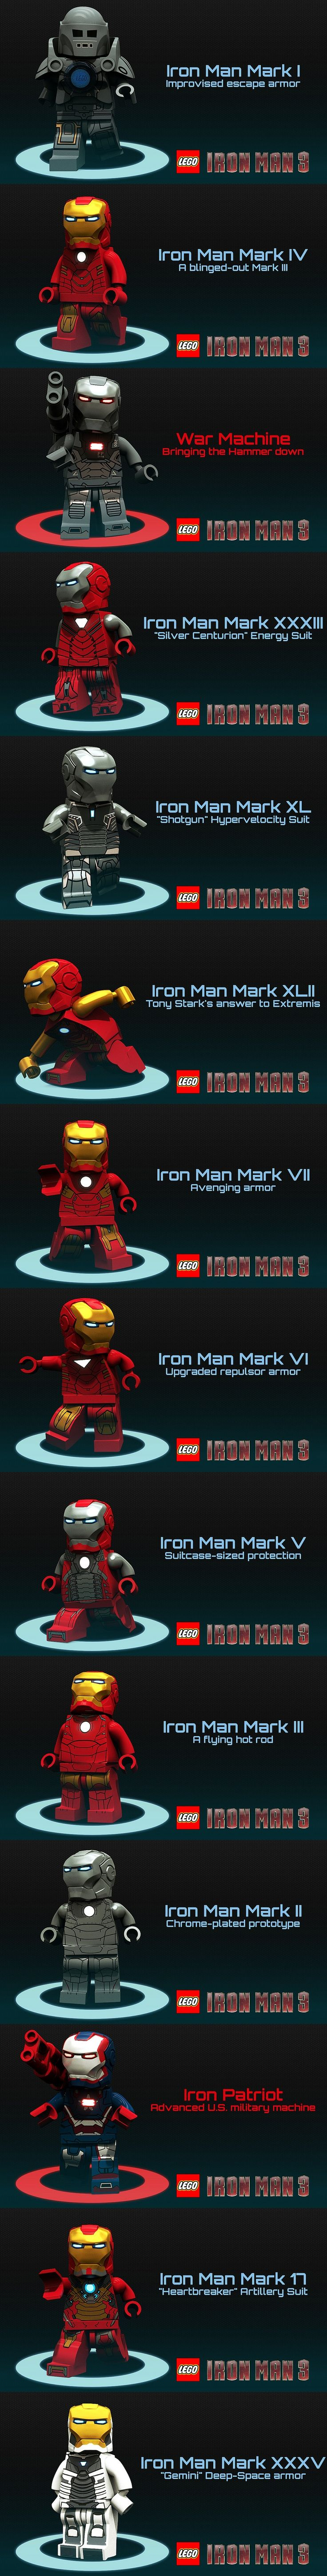 Iron Man suits (custom designs renderered in Blender) #LEGO #IronMan #blender